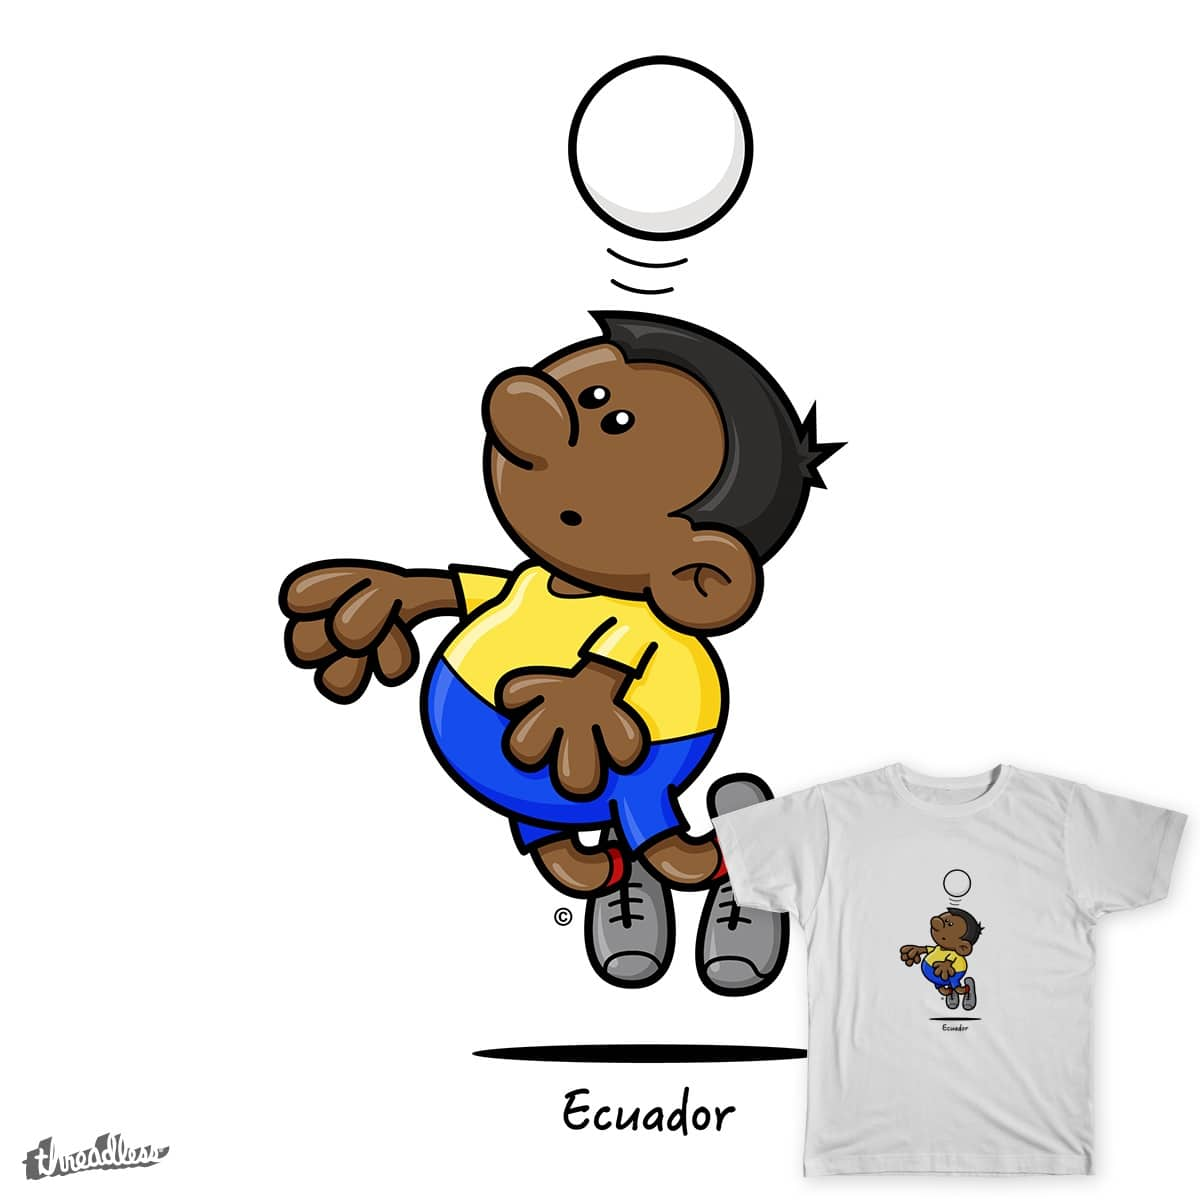 2014 World Cup Cartoons - Ecuador by spaghettiarts on Threadless